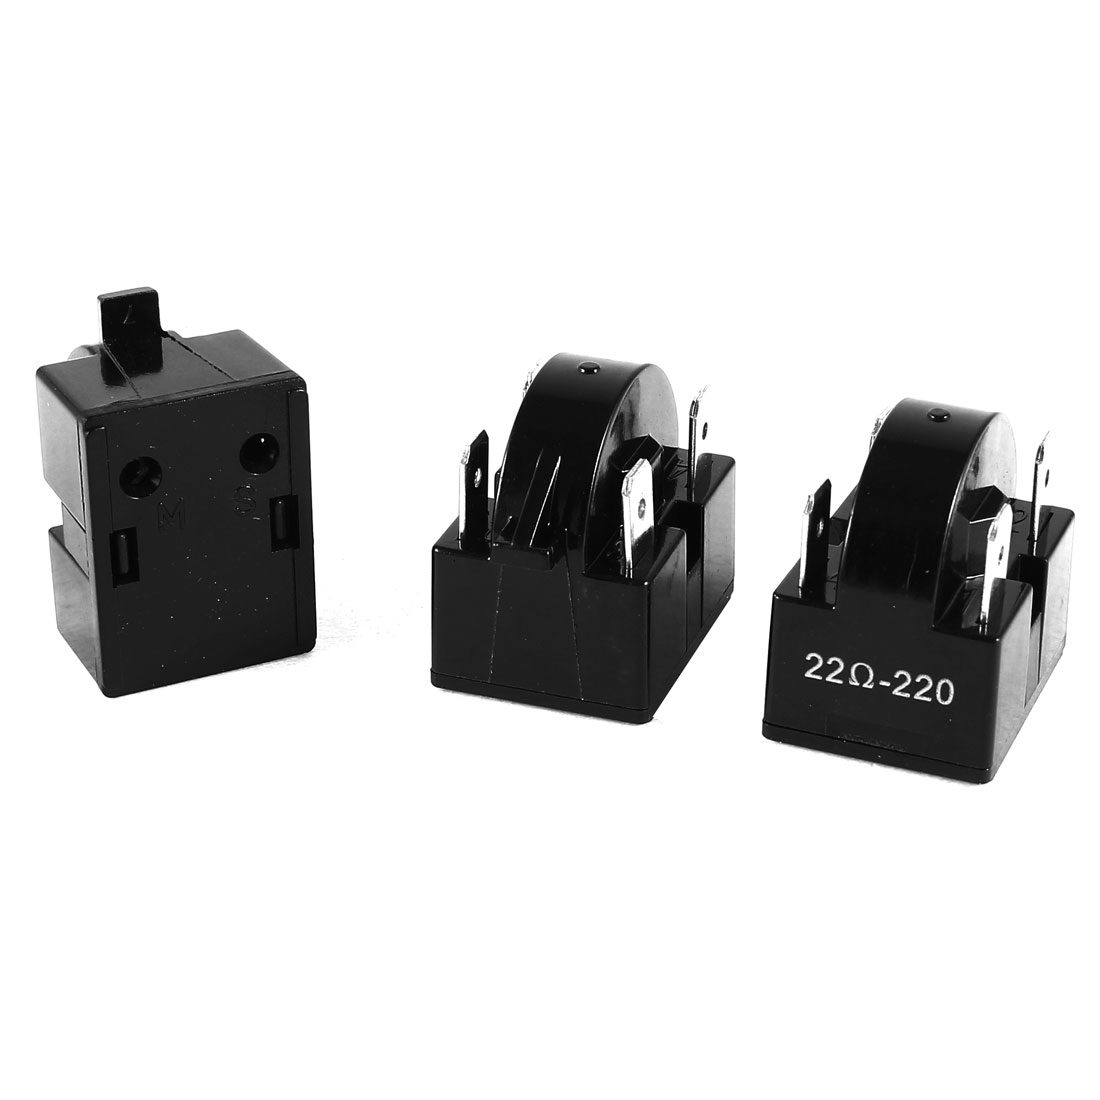 3 Pcs Black Plastic Housing 22 Ohm 4 Pins PTC Starter Relay for Refrigerator